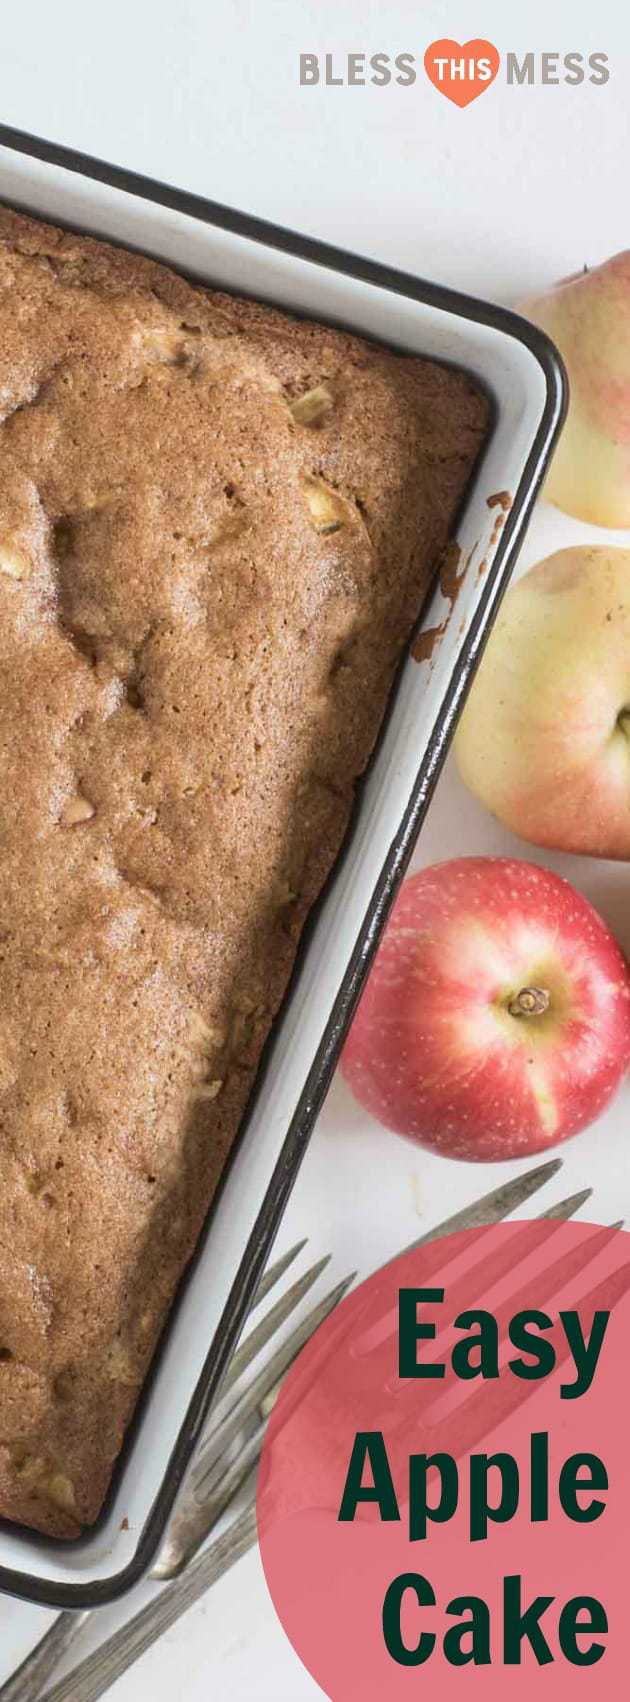 </p> <div>The best easy apple cake is made with fresh chopped apples, whole wheat flour, eggs, and a few other simple ingredients you already have on hand!</div> <p>